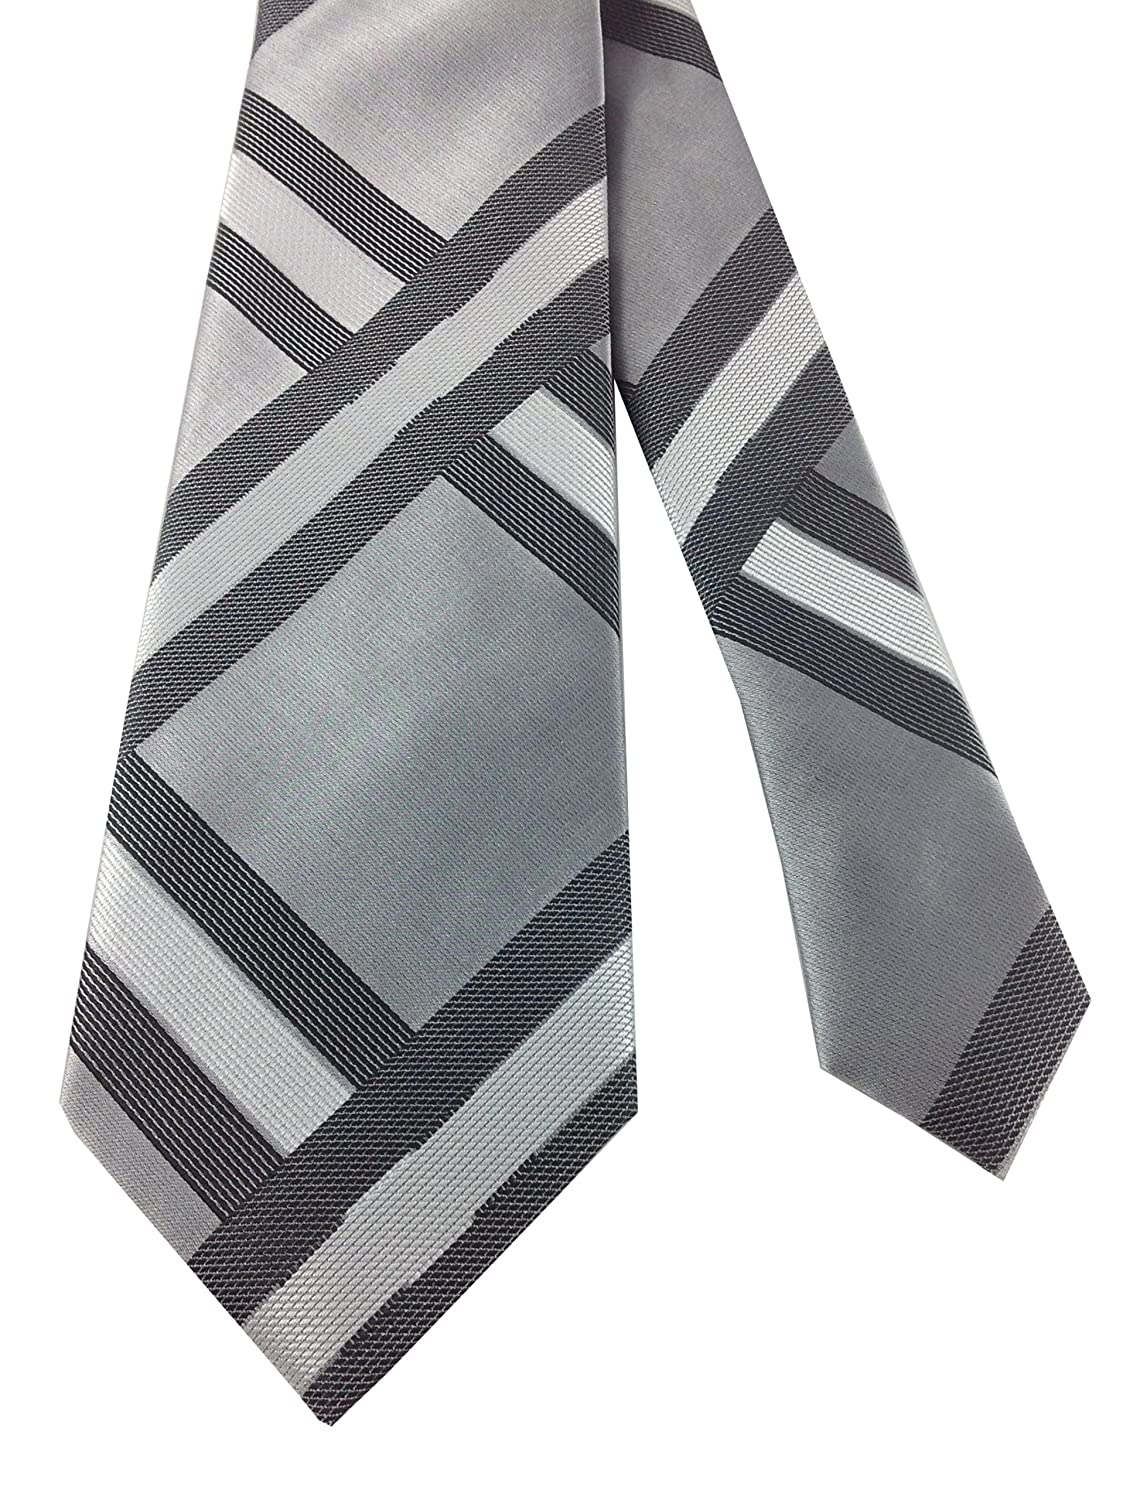 New 1920s Mens Ties & Bow Ties  Grey Vintage Geometric Pattern Tie $19.99 AT vintagedancer.com